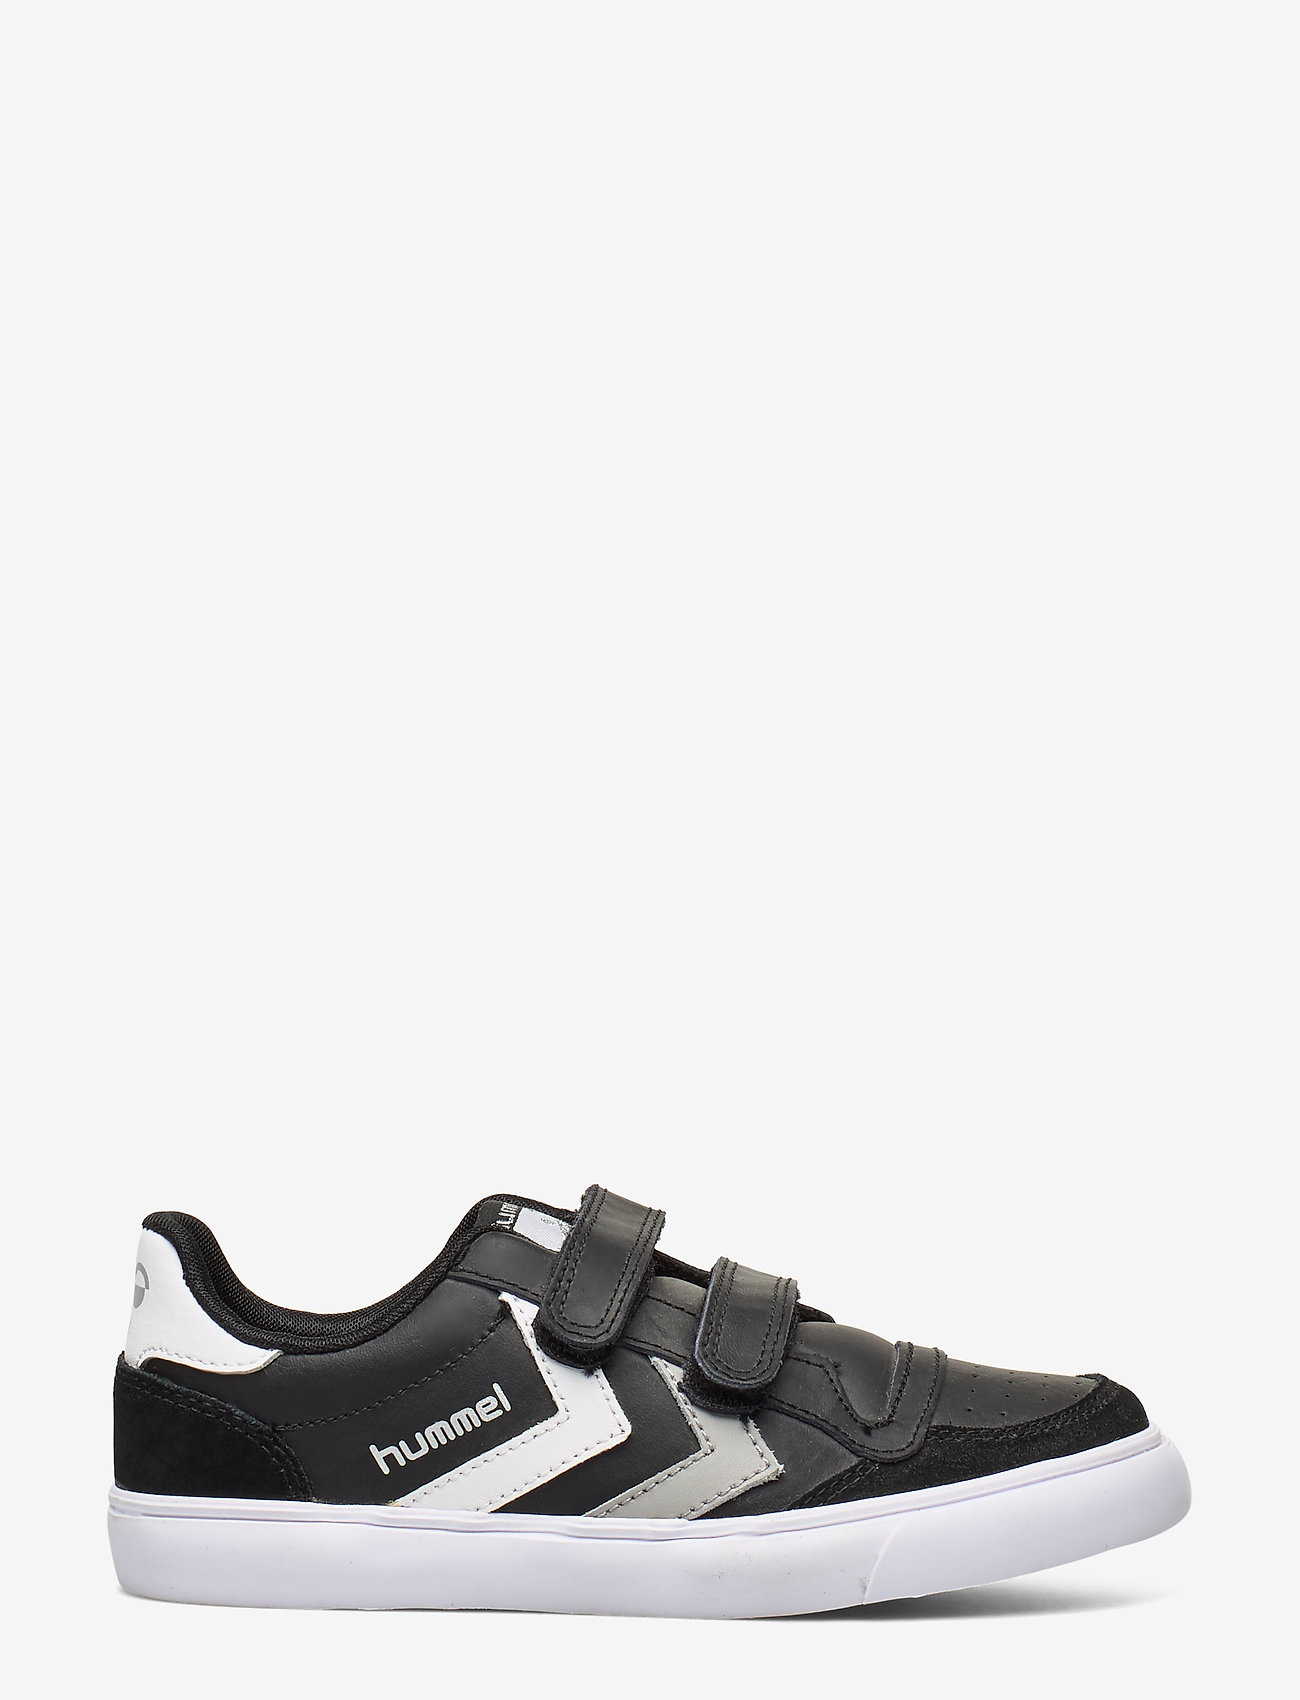 Hummel - HUMMEL STADIL JR LEATHER LOW - baskets - black/white/grey - 1